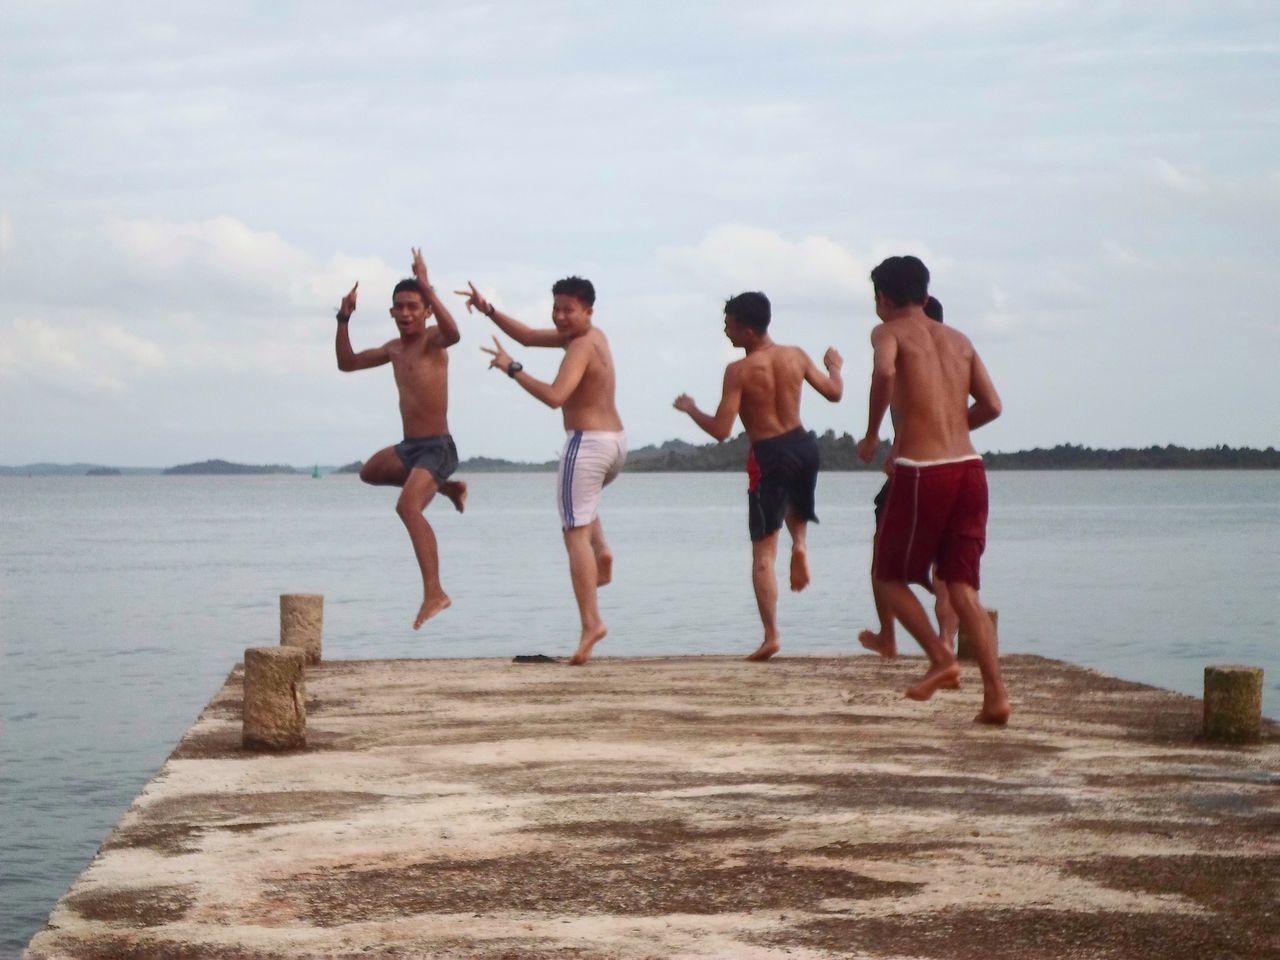 shirtless, water, sea, mid-air, full length, real people, jumping, leisure activity, outdoors, fun, vacations, day, togetherness, rear view, sky, enjoyment, lifestyles, men, motion, beach, nature, standing, friendship, young adult, adult, people